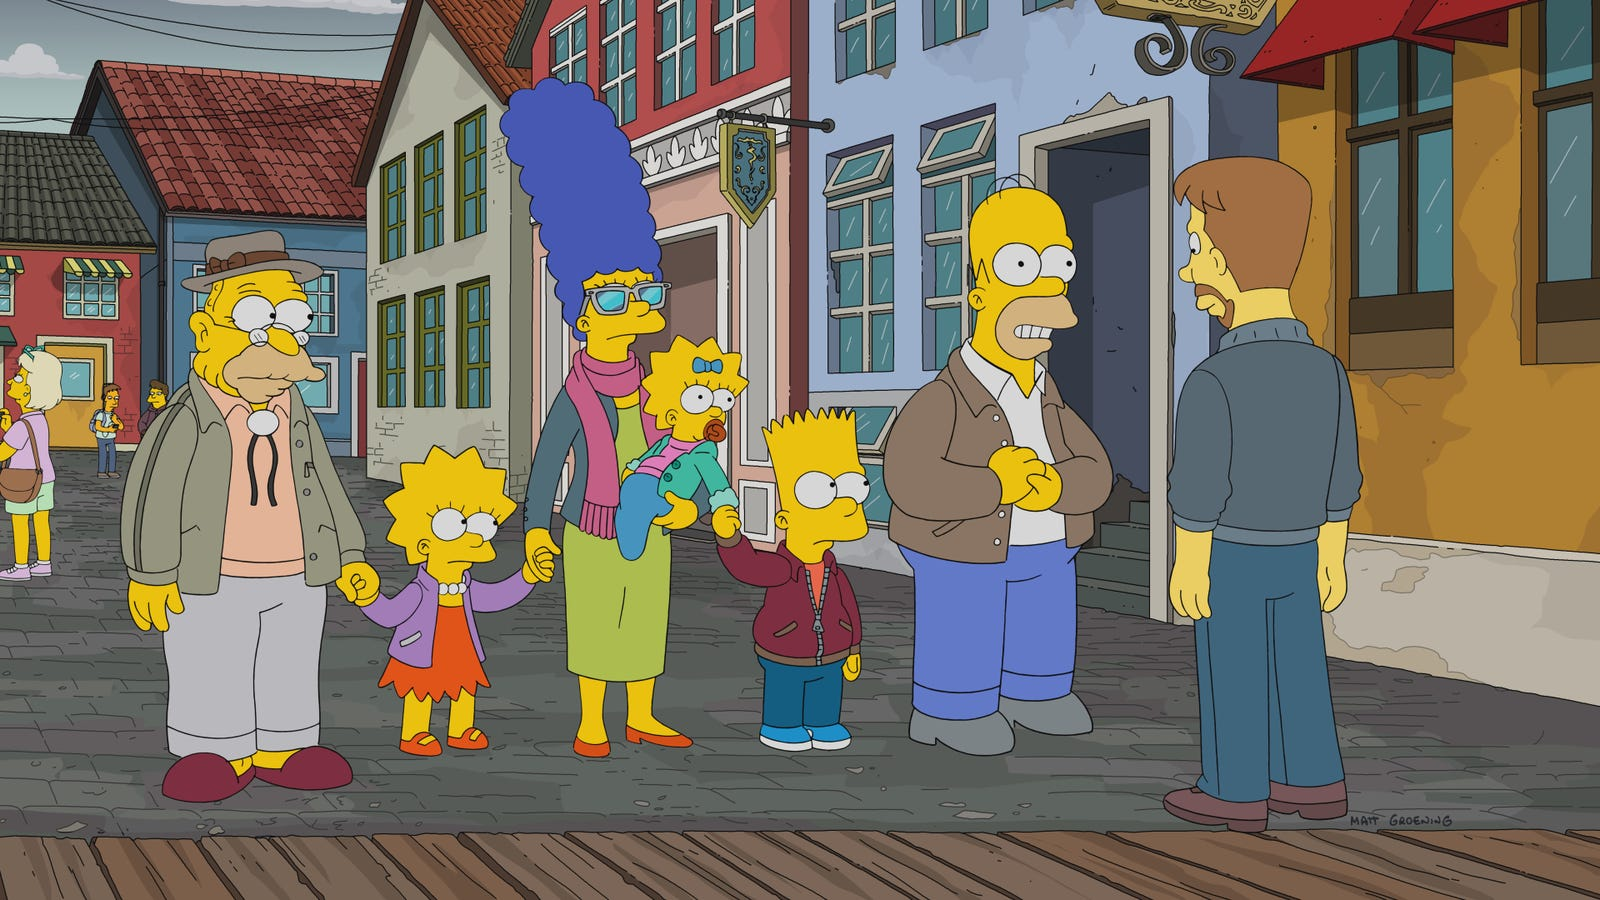 The Simpsons take Grandpa to Denmark for cheap medical treatment and some serious déjà vu